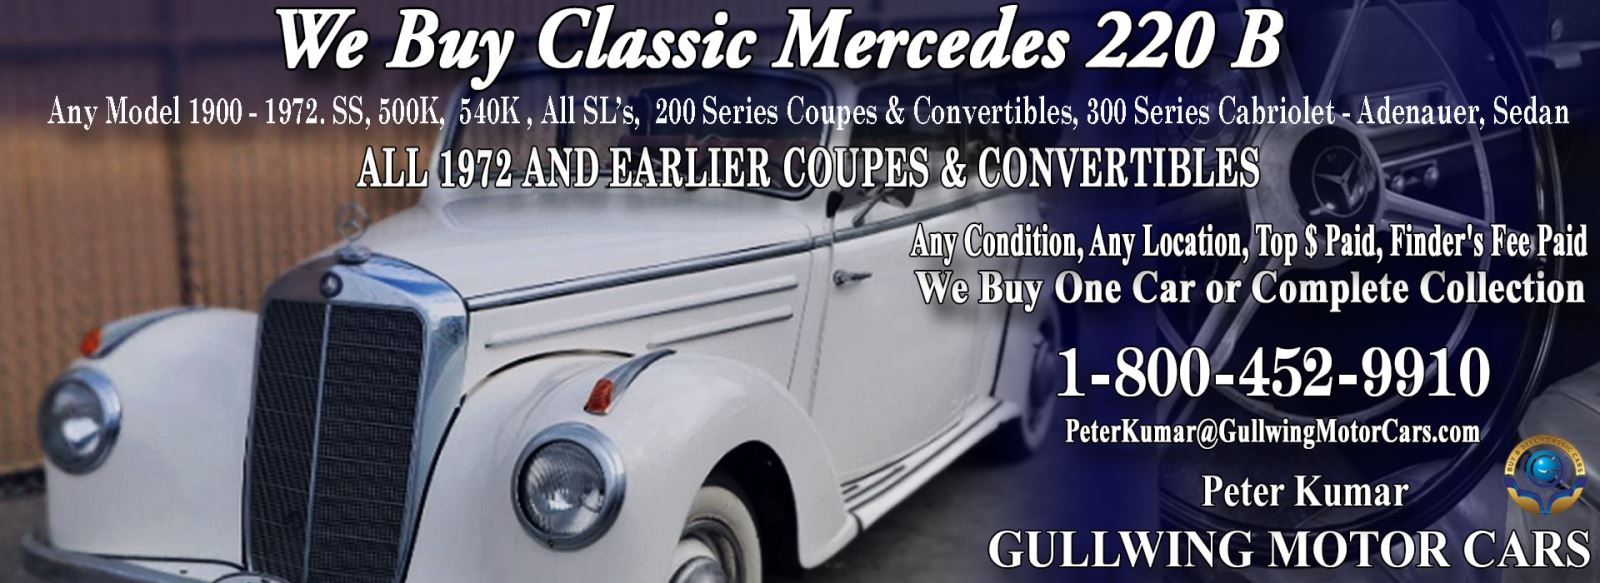 Classic Mercedes 220B for sale, we buy vintage Mercedes 220B. Call Peter Kumar. Gullwing Motor